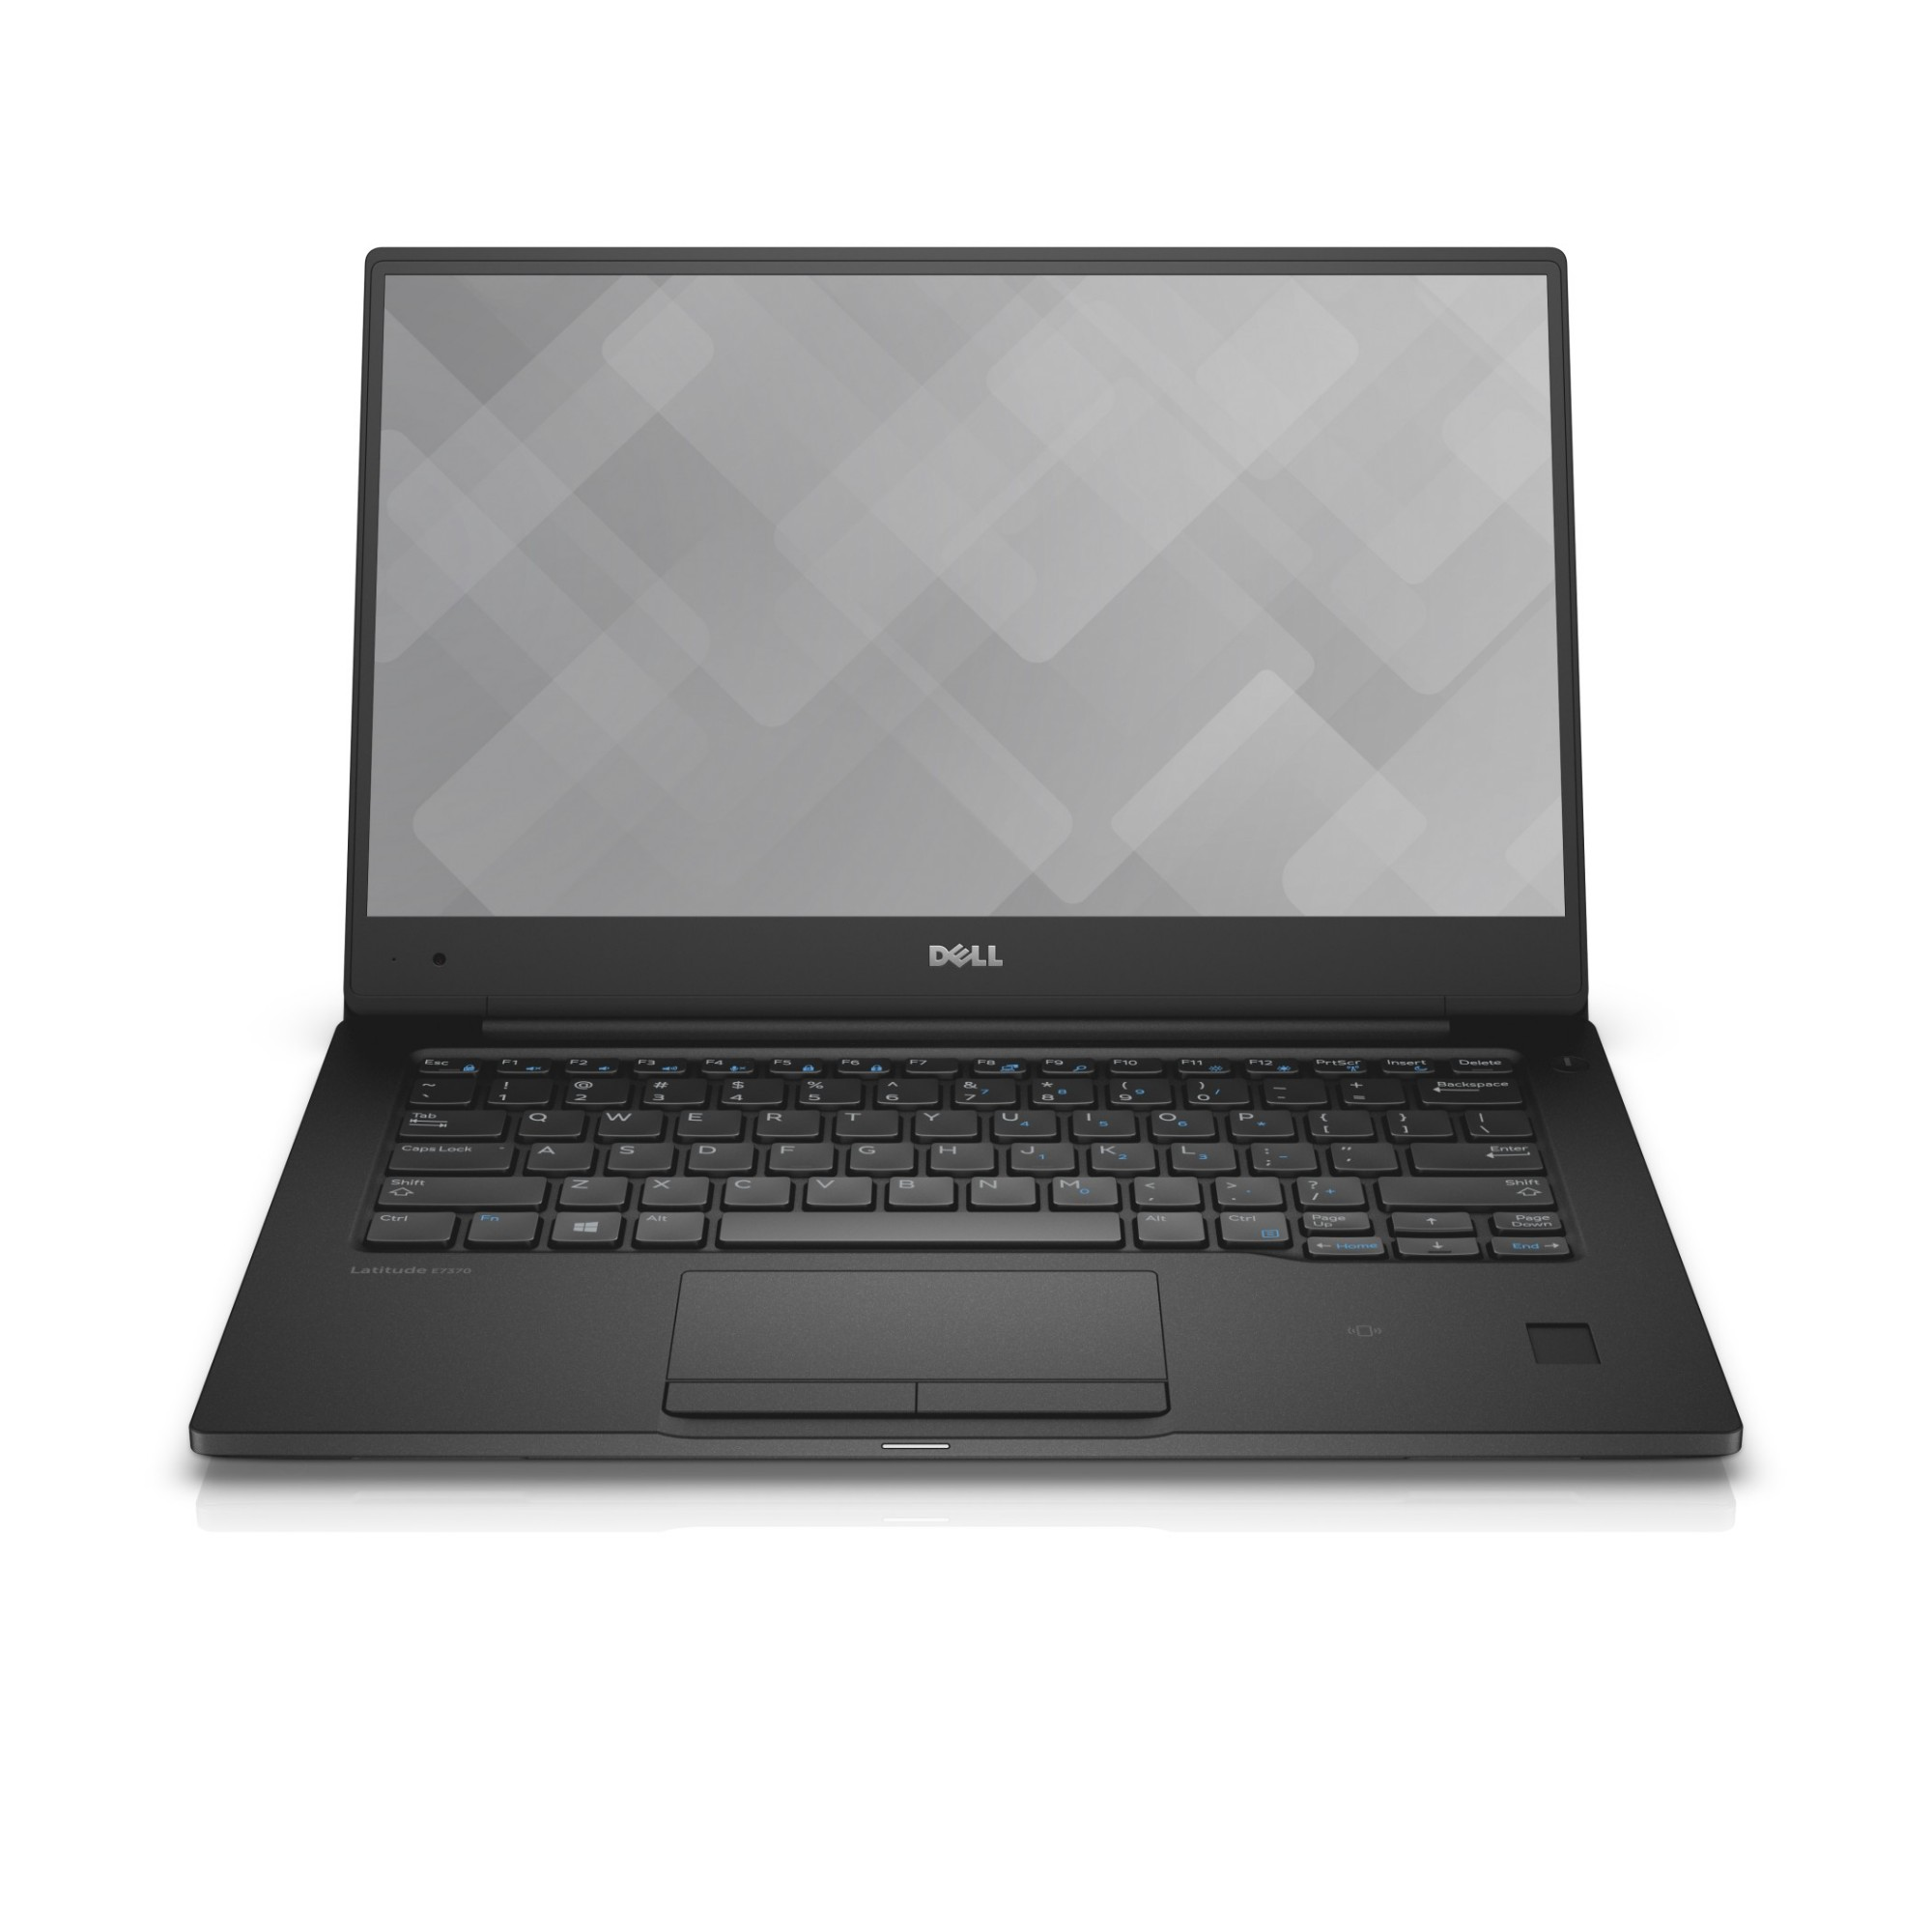 "DELL Latitude 7370 1.2GHz m7-6Y75 13.3"" 3200 x 1800pixels Touchscreen 4G Black Ultrabook"